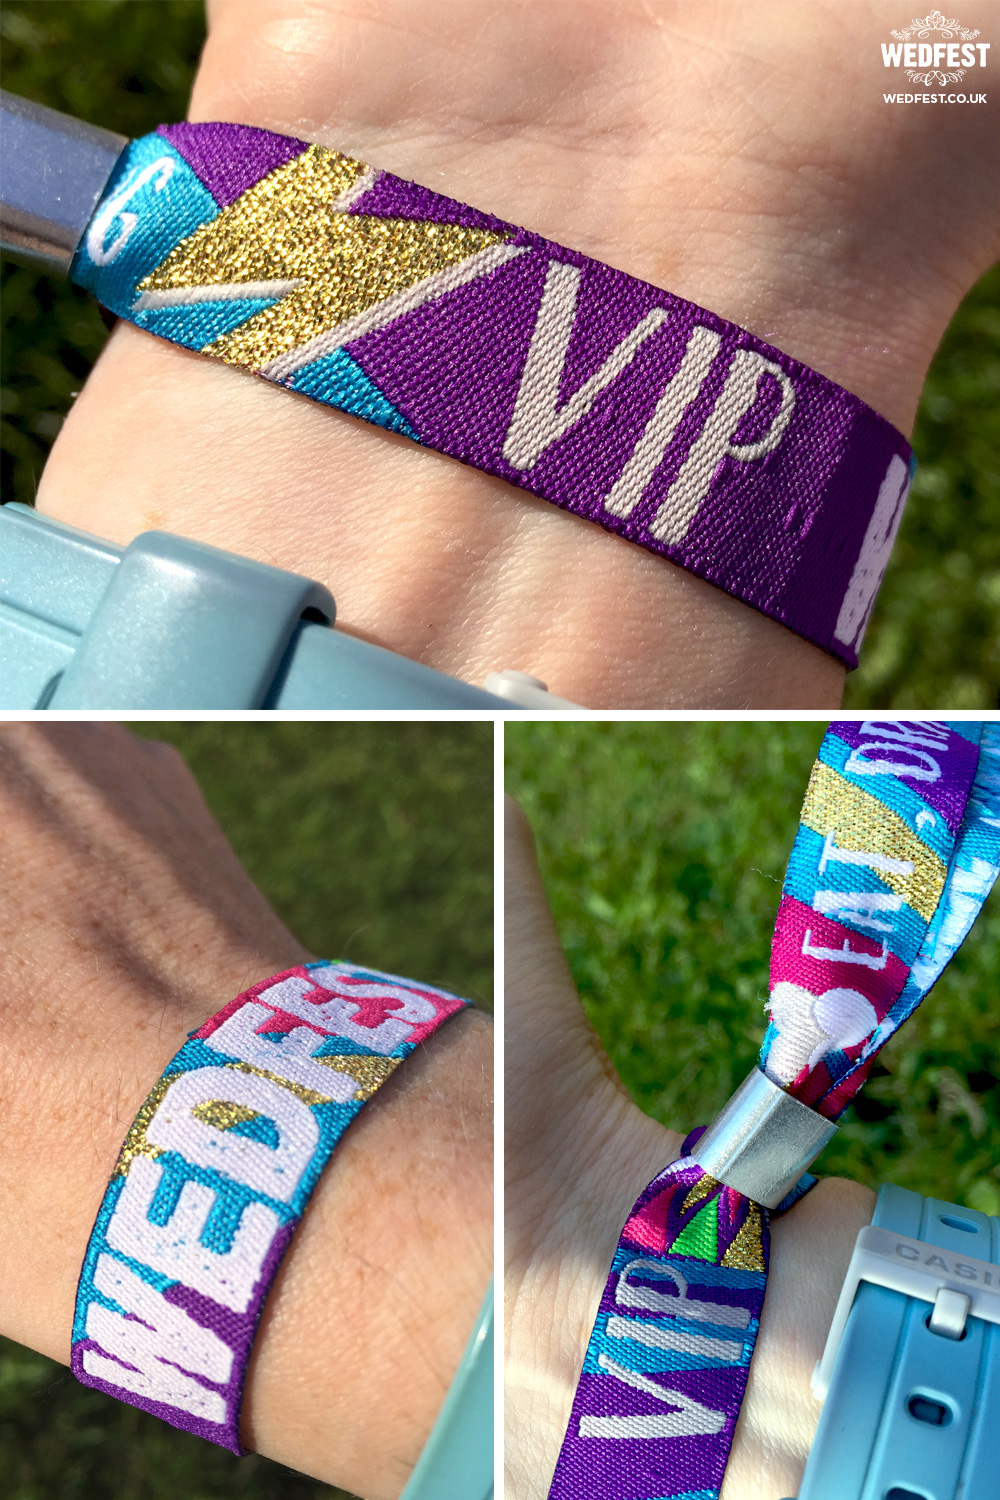 wedstock wedding wristbands